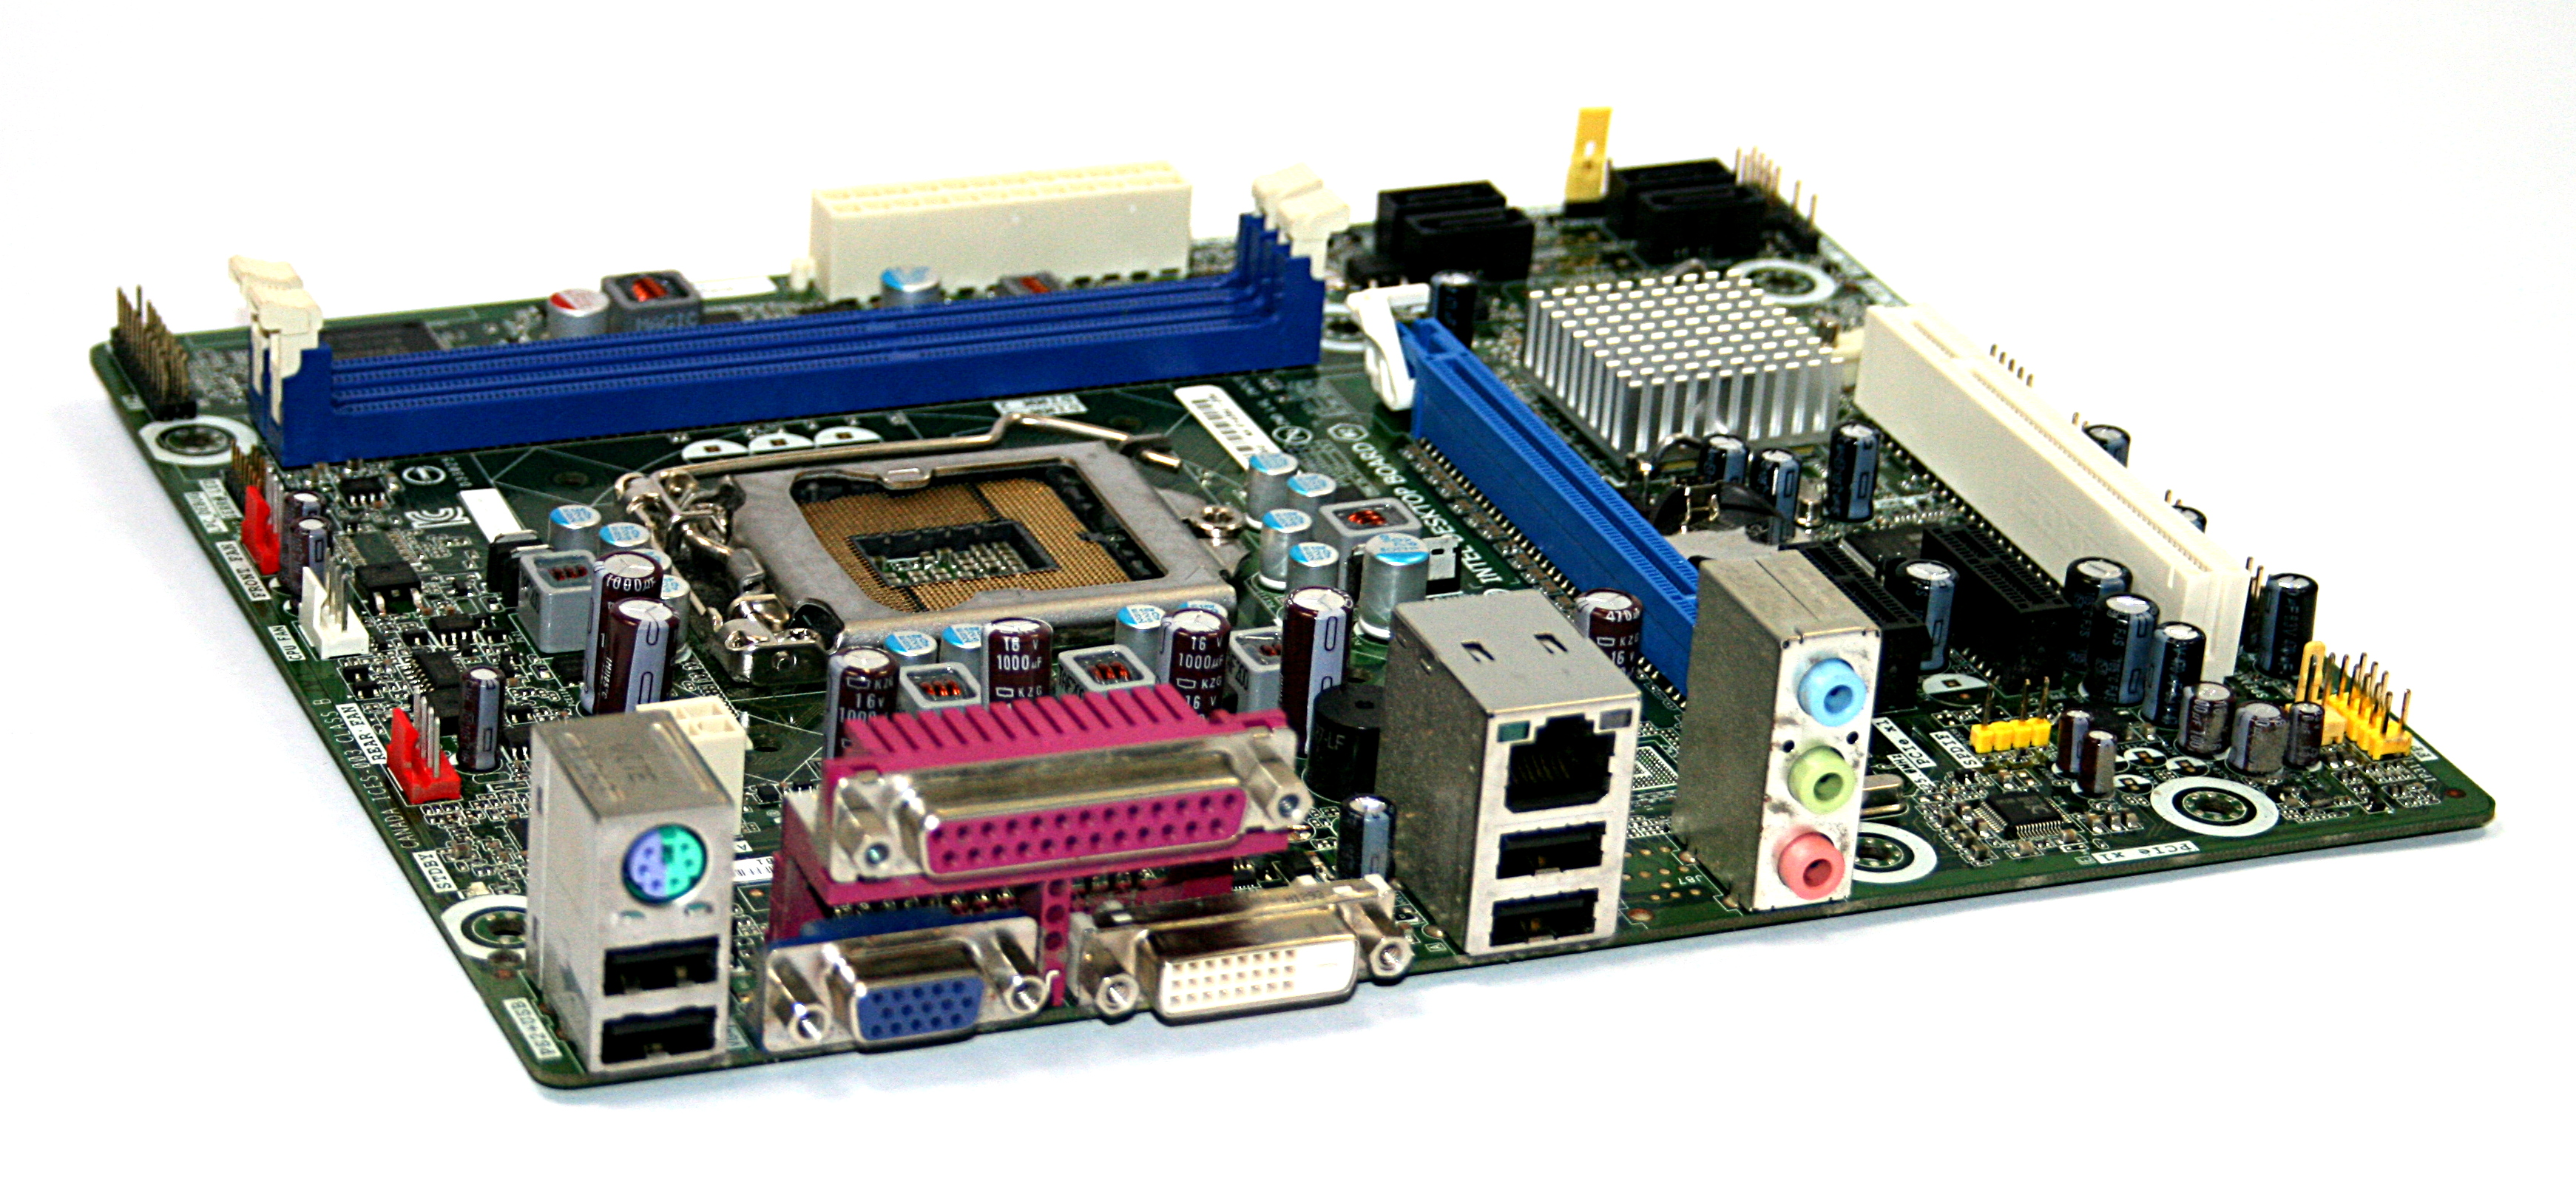 Intel DH61CR Socket LGA1155 Desktop Motherboard